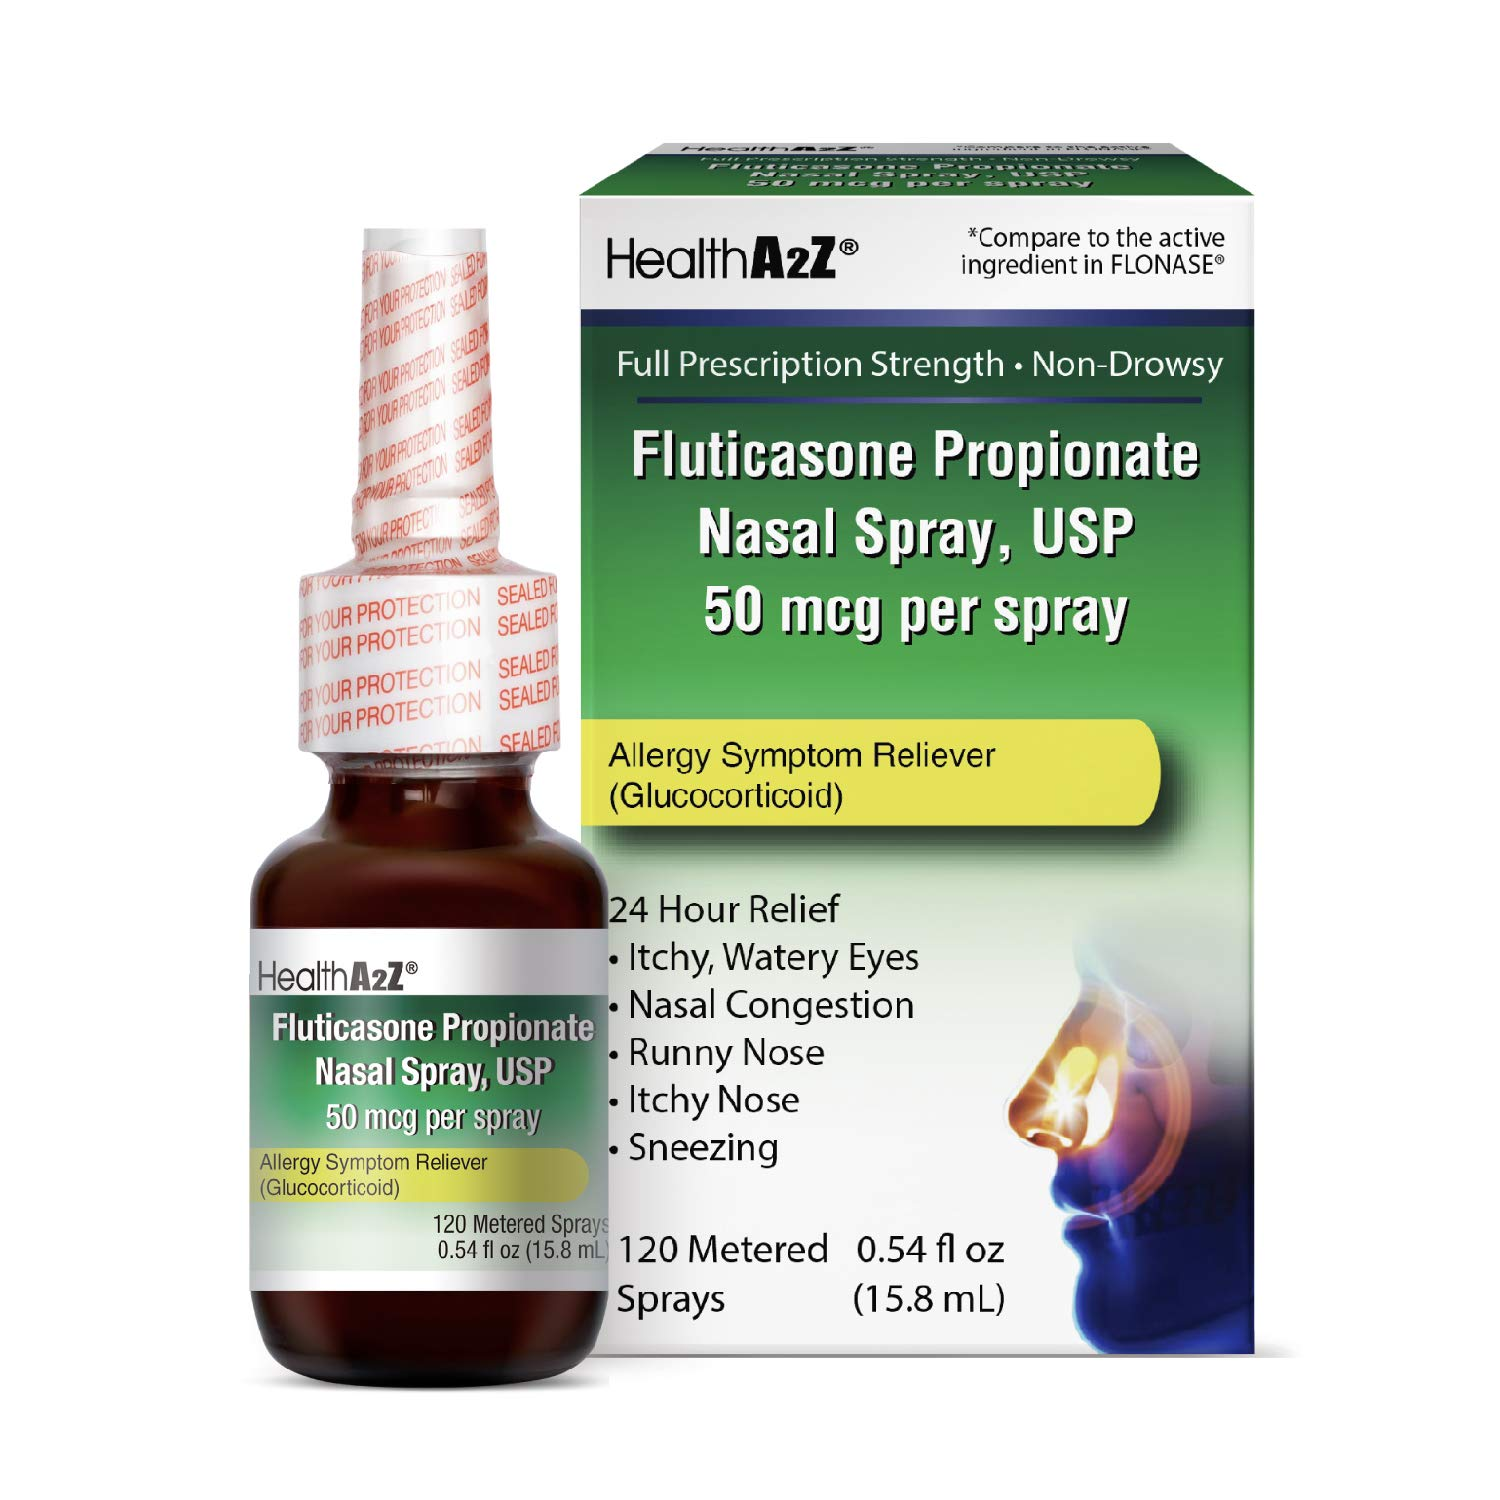 HealthA2Z Fluticasone Propionate Nasal Sprays, 24 Hour Allergy Relief,120 Sprays, 0.54 fl oz by HealthA2Z